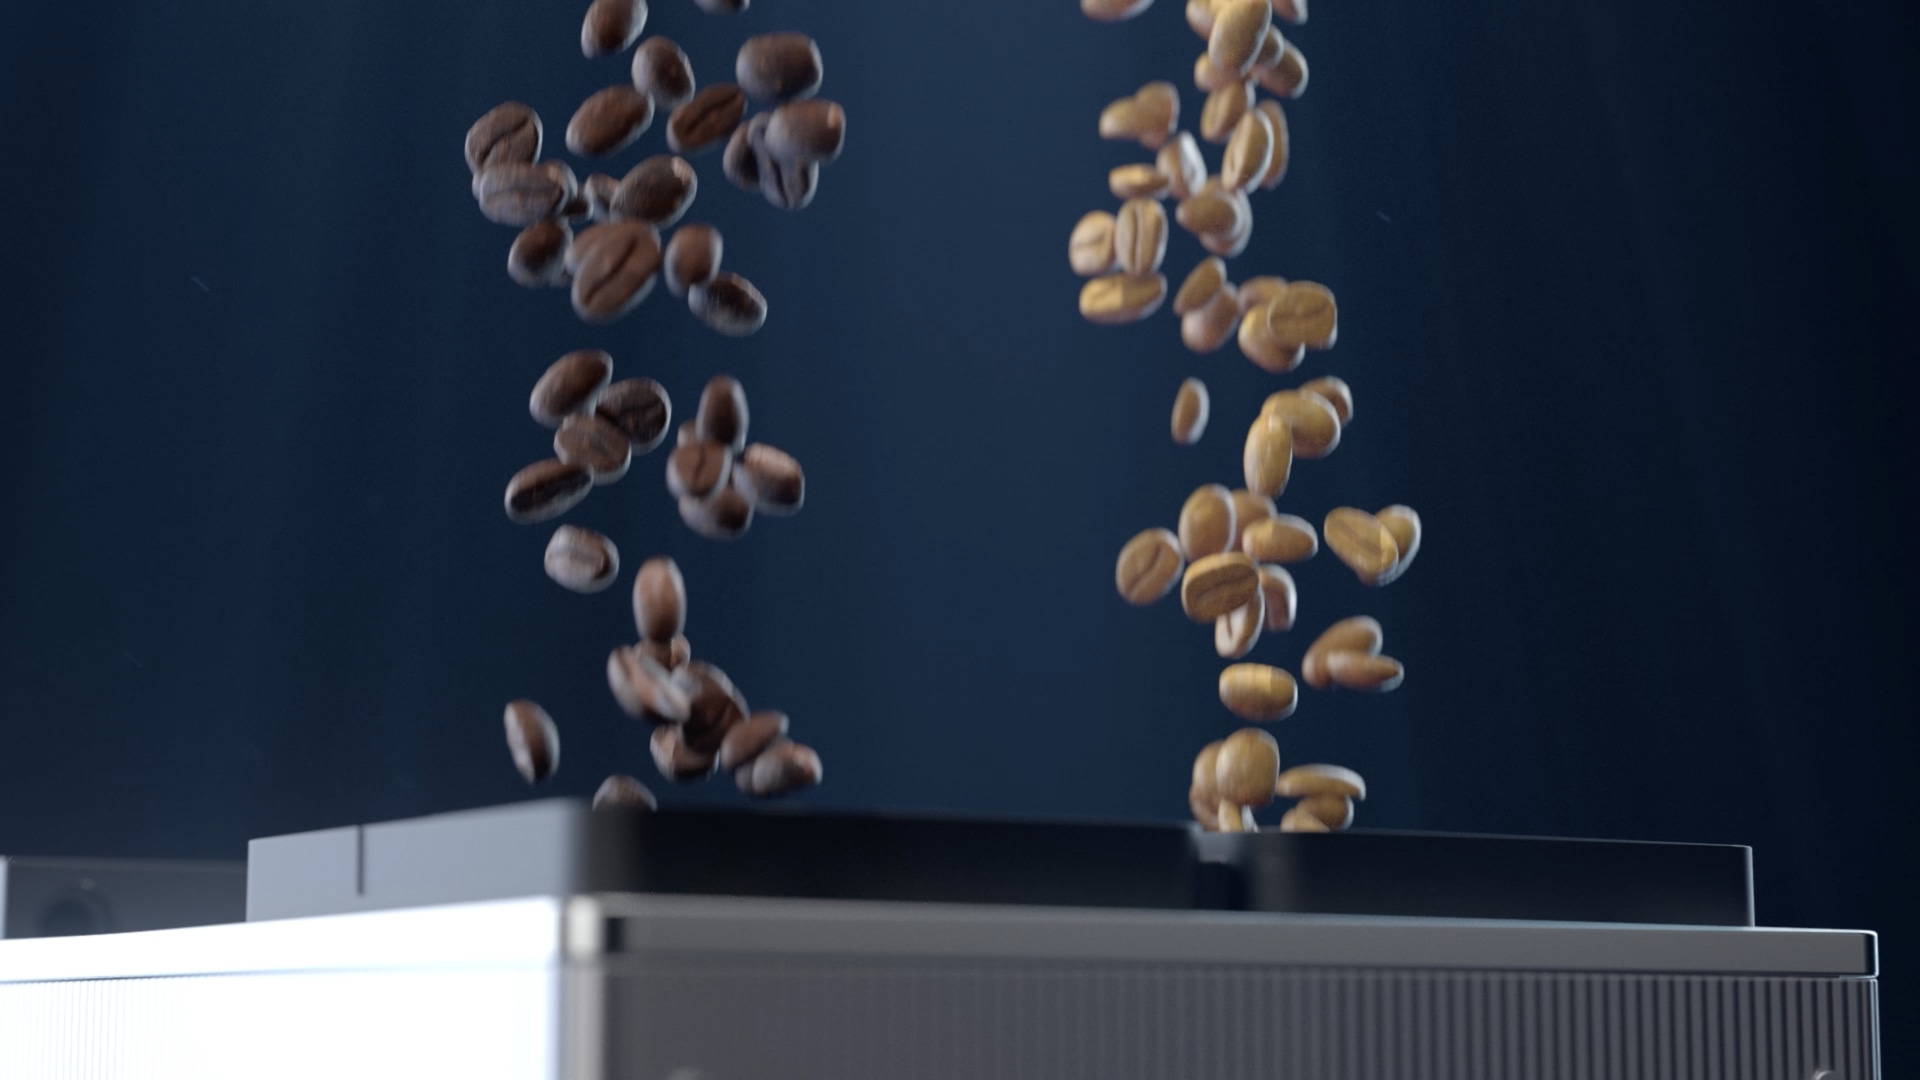 Bean to Cup Promo Video for De'Longhi